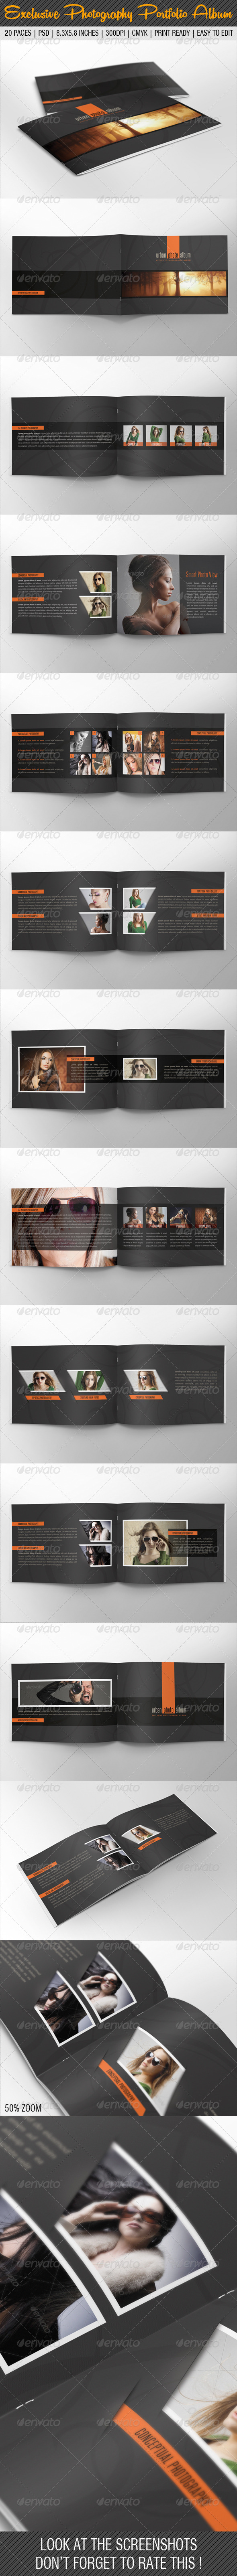 GraphicRiver Exclusive Photography Portfolio Album 05 6780205